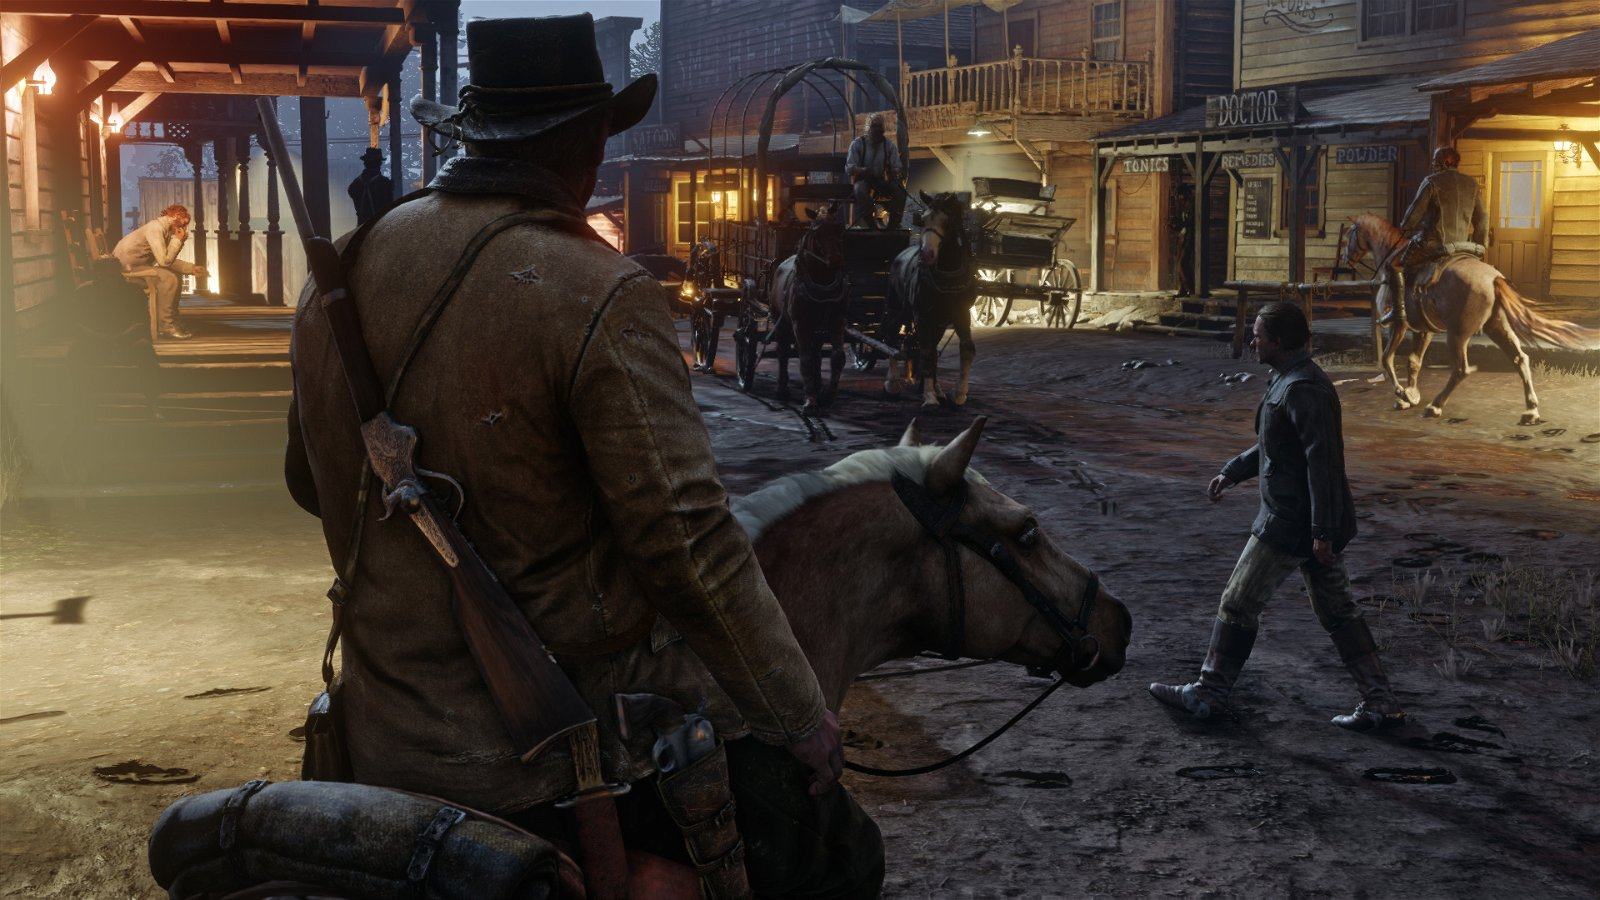 Most Anticipated AAA Games of 2018 1